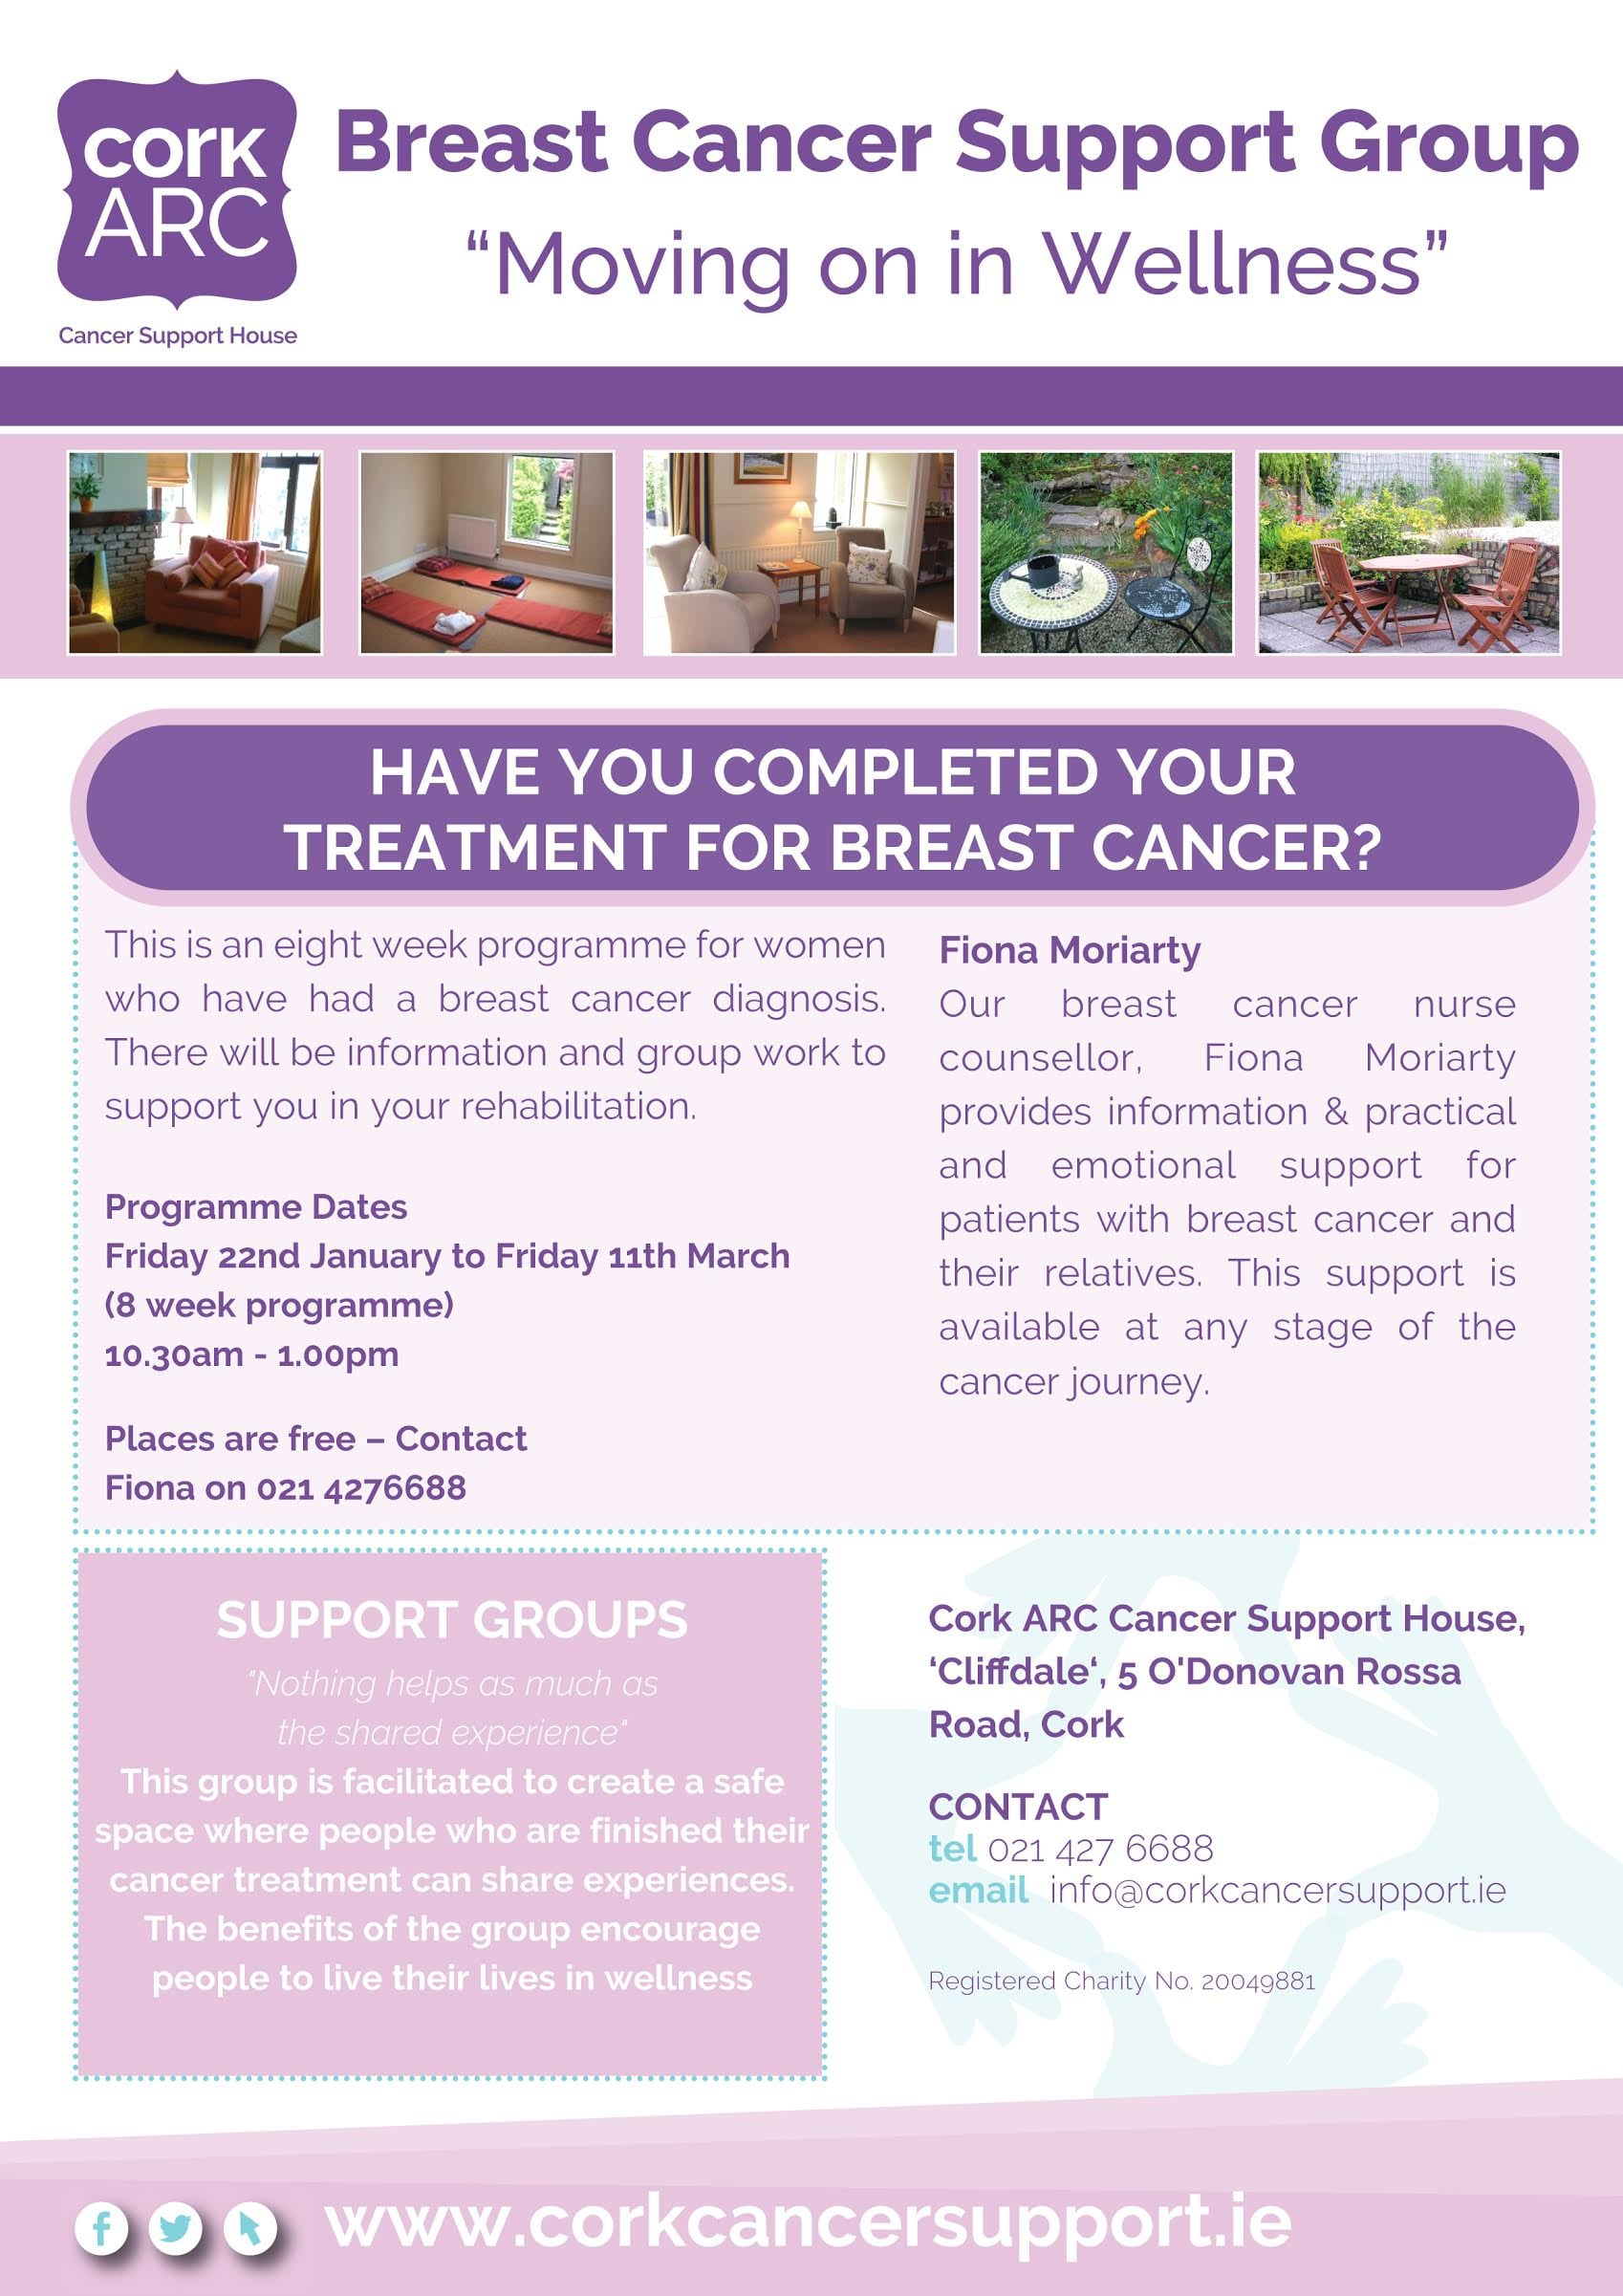 Moving on in Wellness - Breast Cancer Support Group at Cork ARC